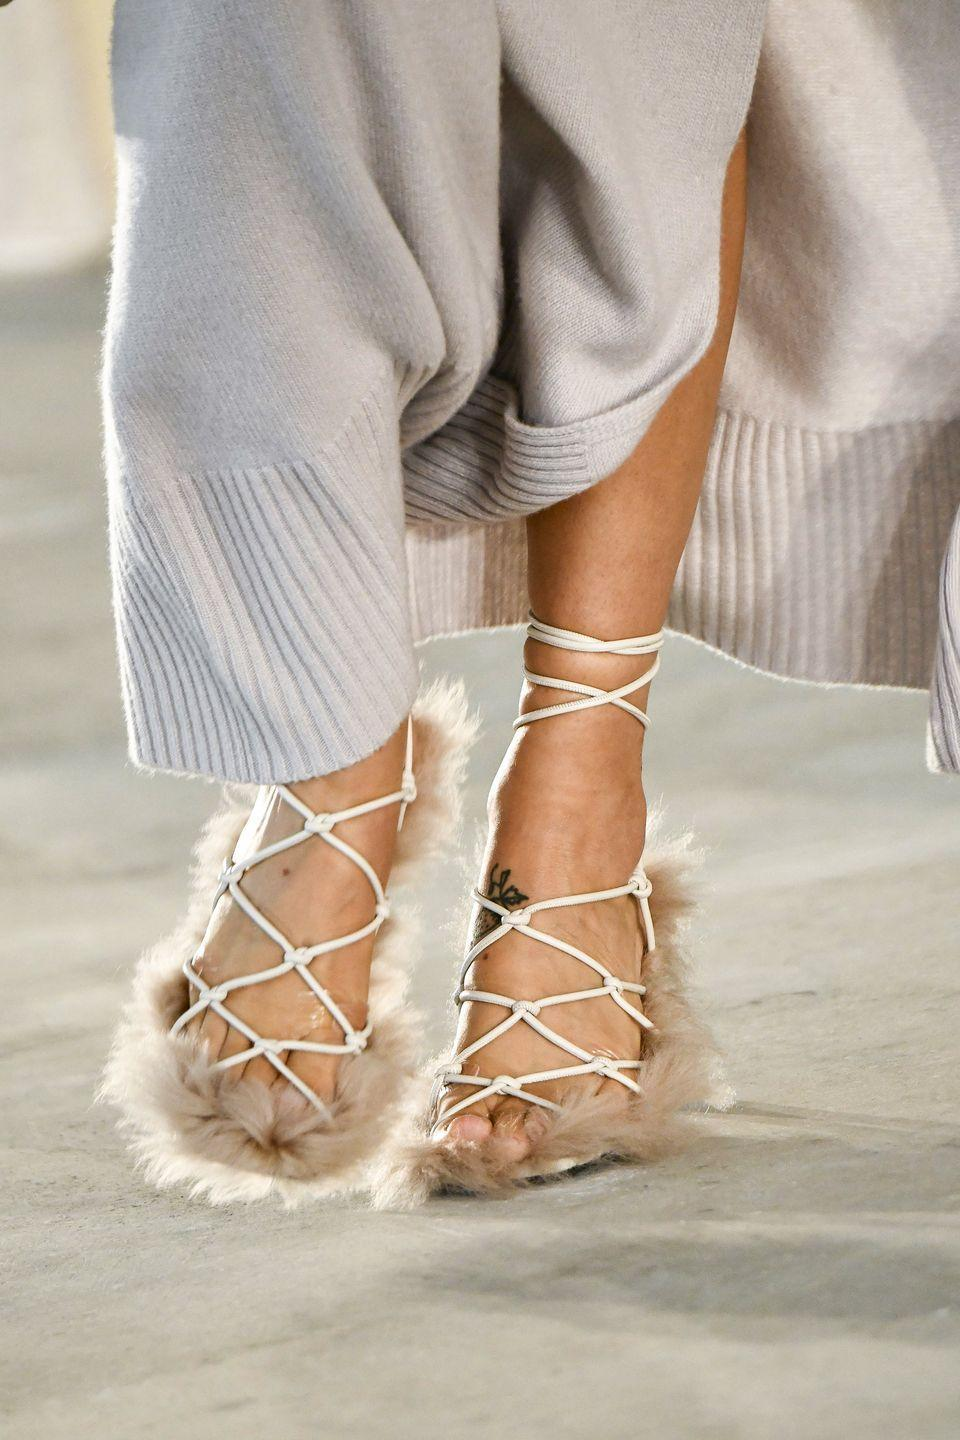 <p>Altuzarra offers a solution to easing back into heels after spending so much time in slippers over the last year.</p>